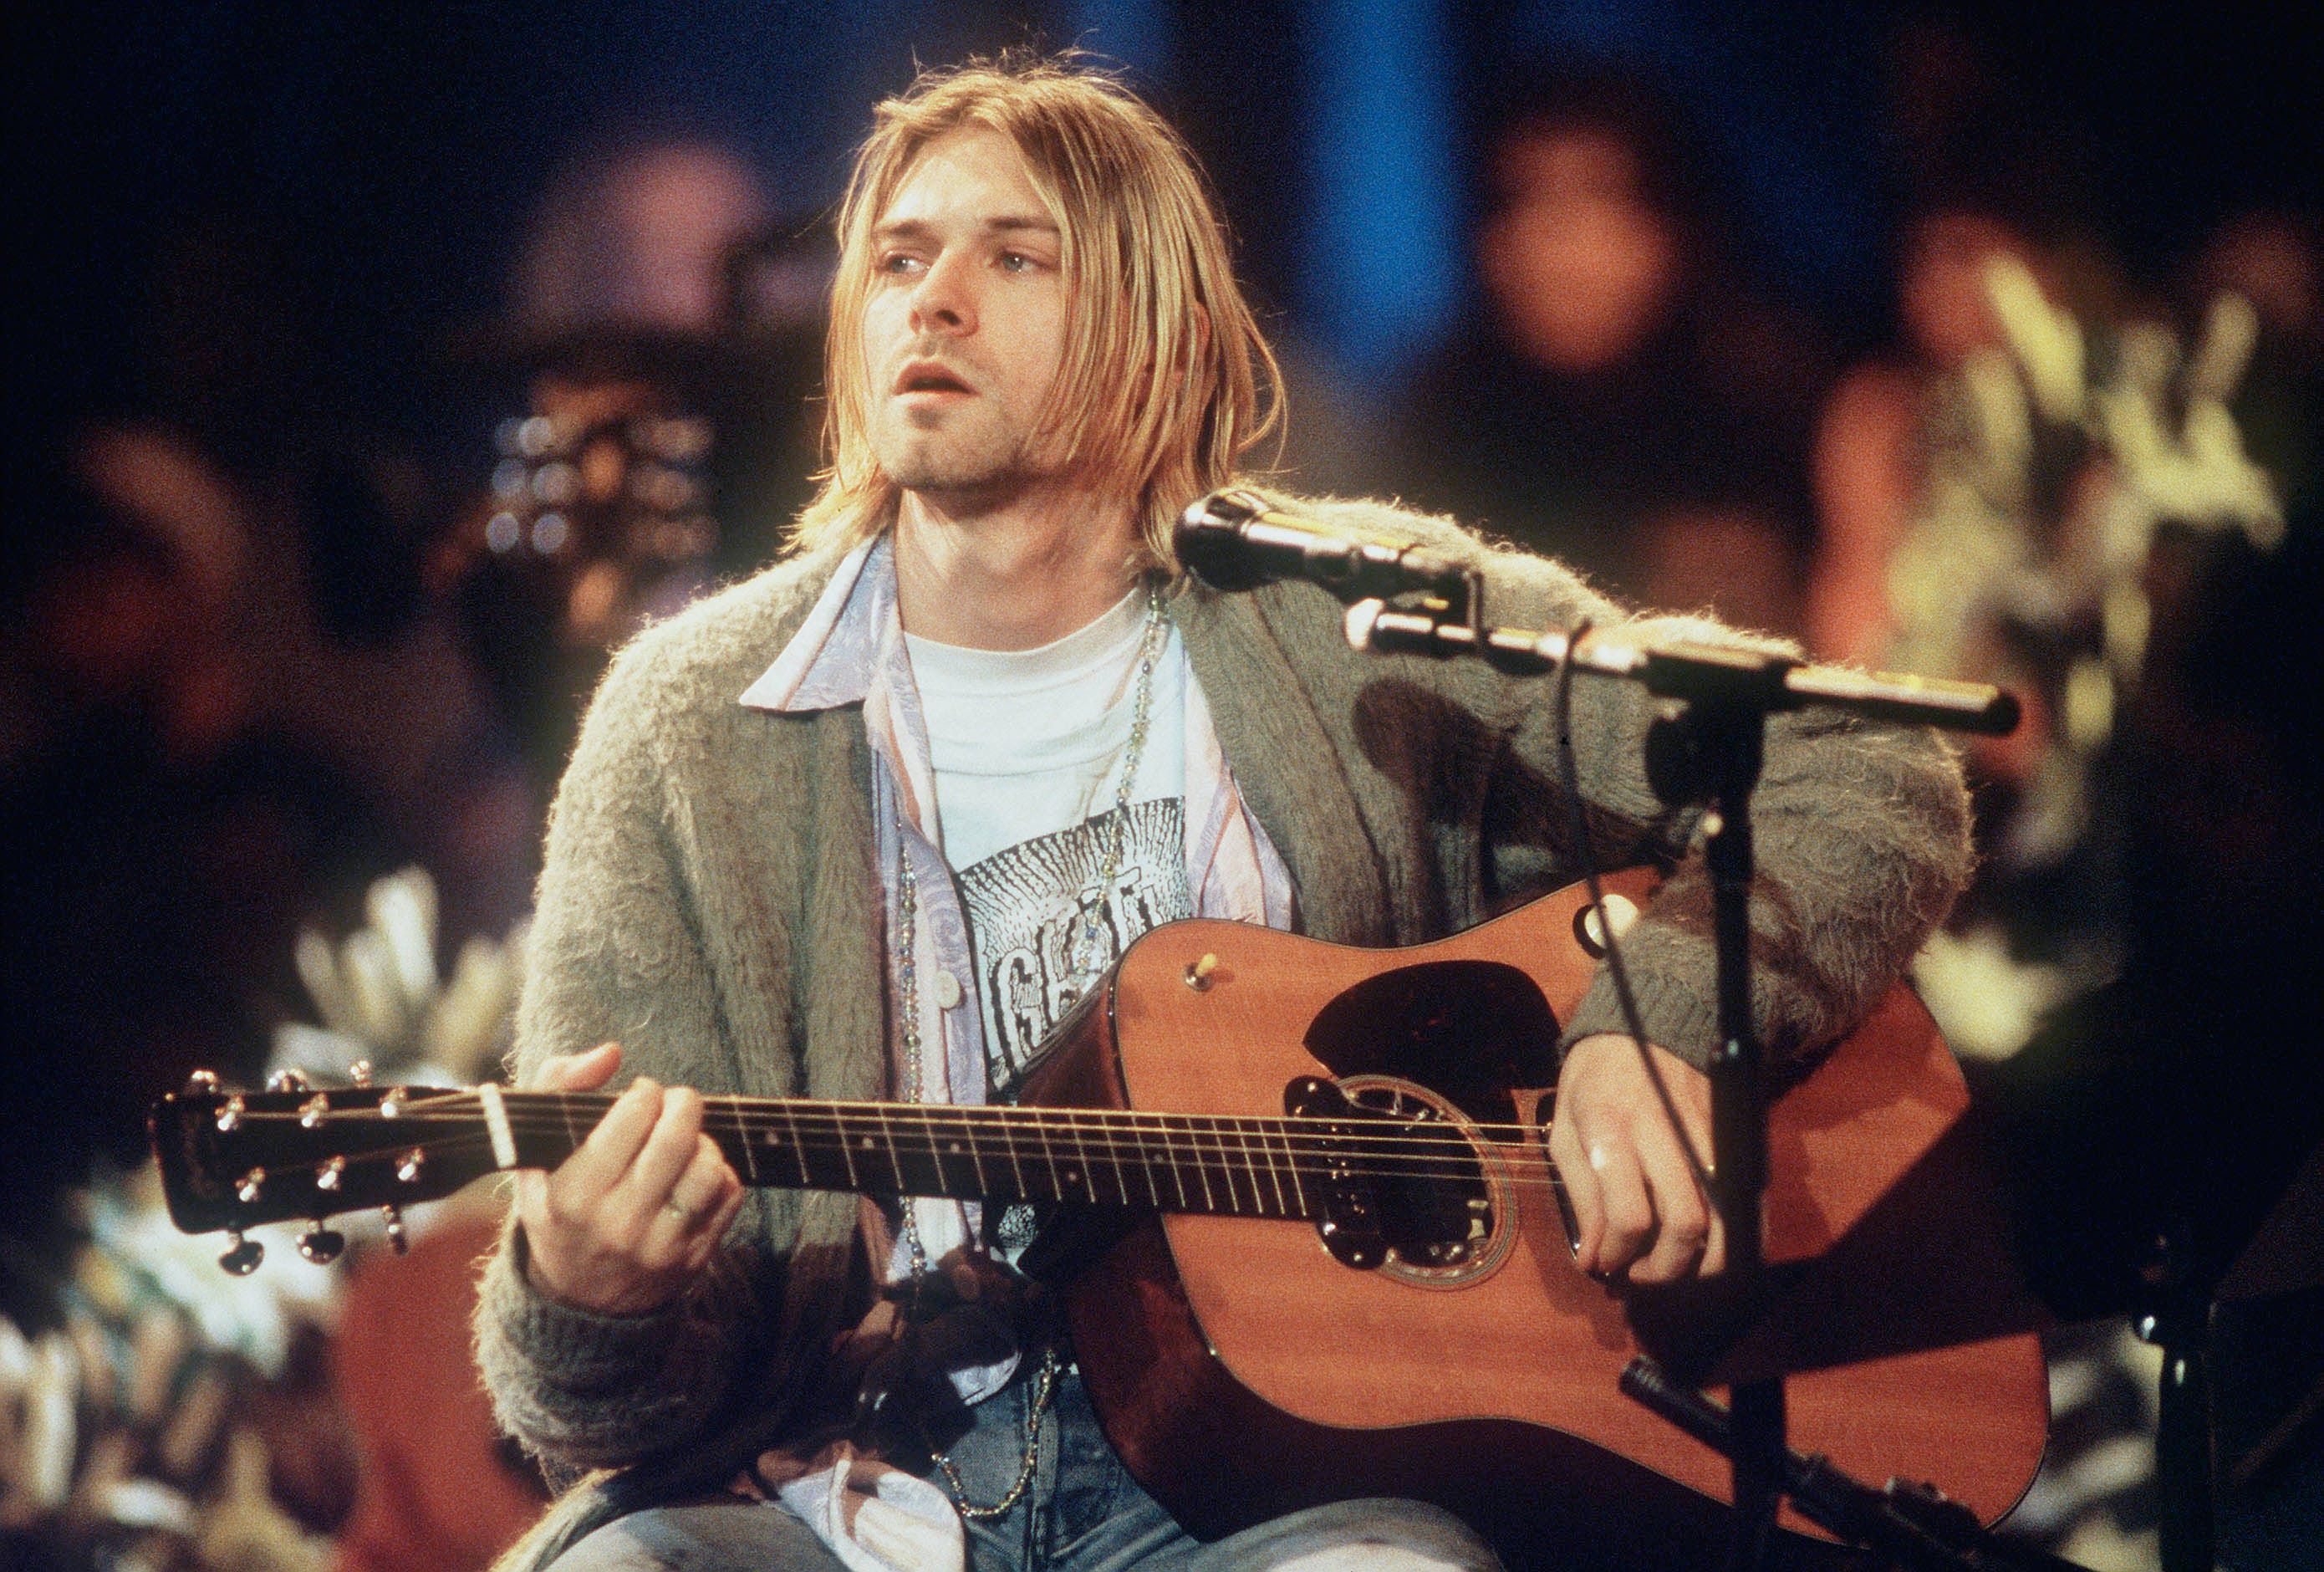 YOUTUBER CREATED FAKE NIRVANA SONG WITH AI